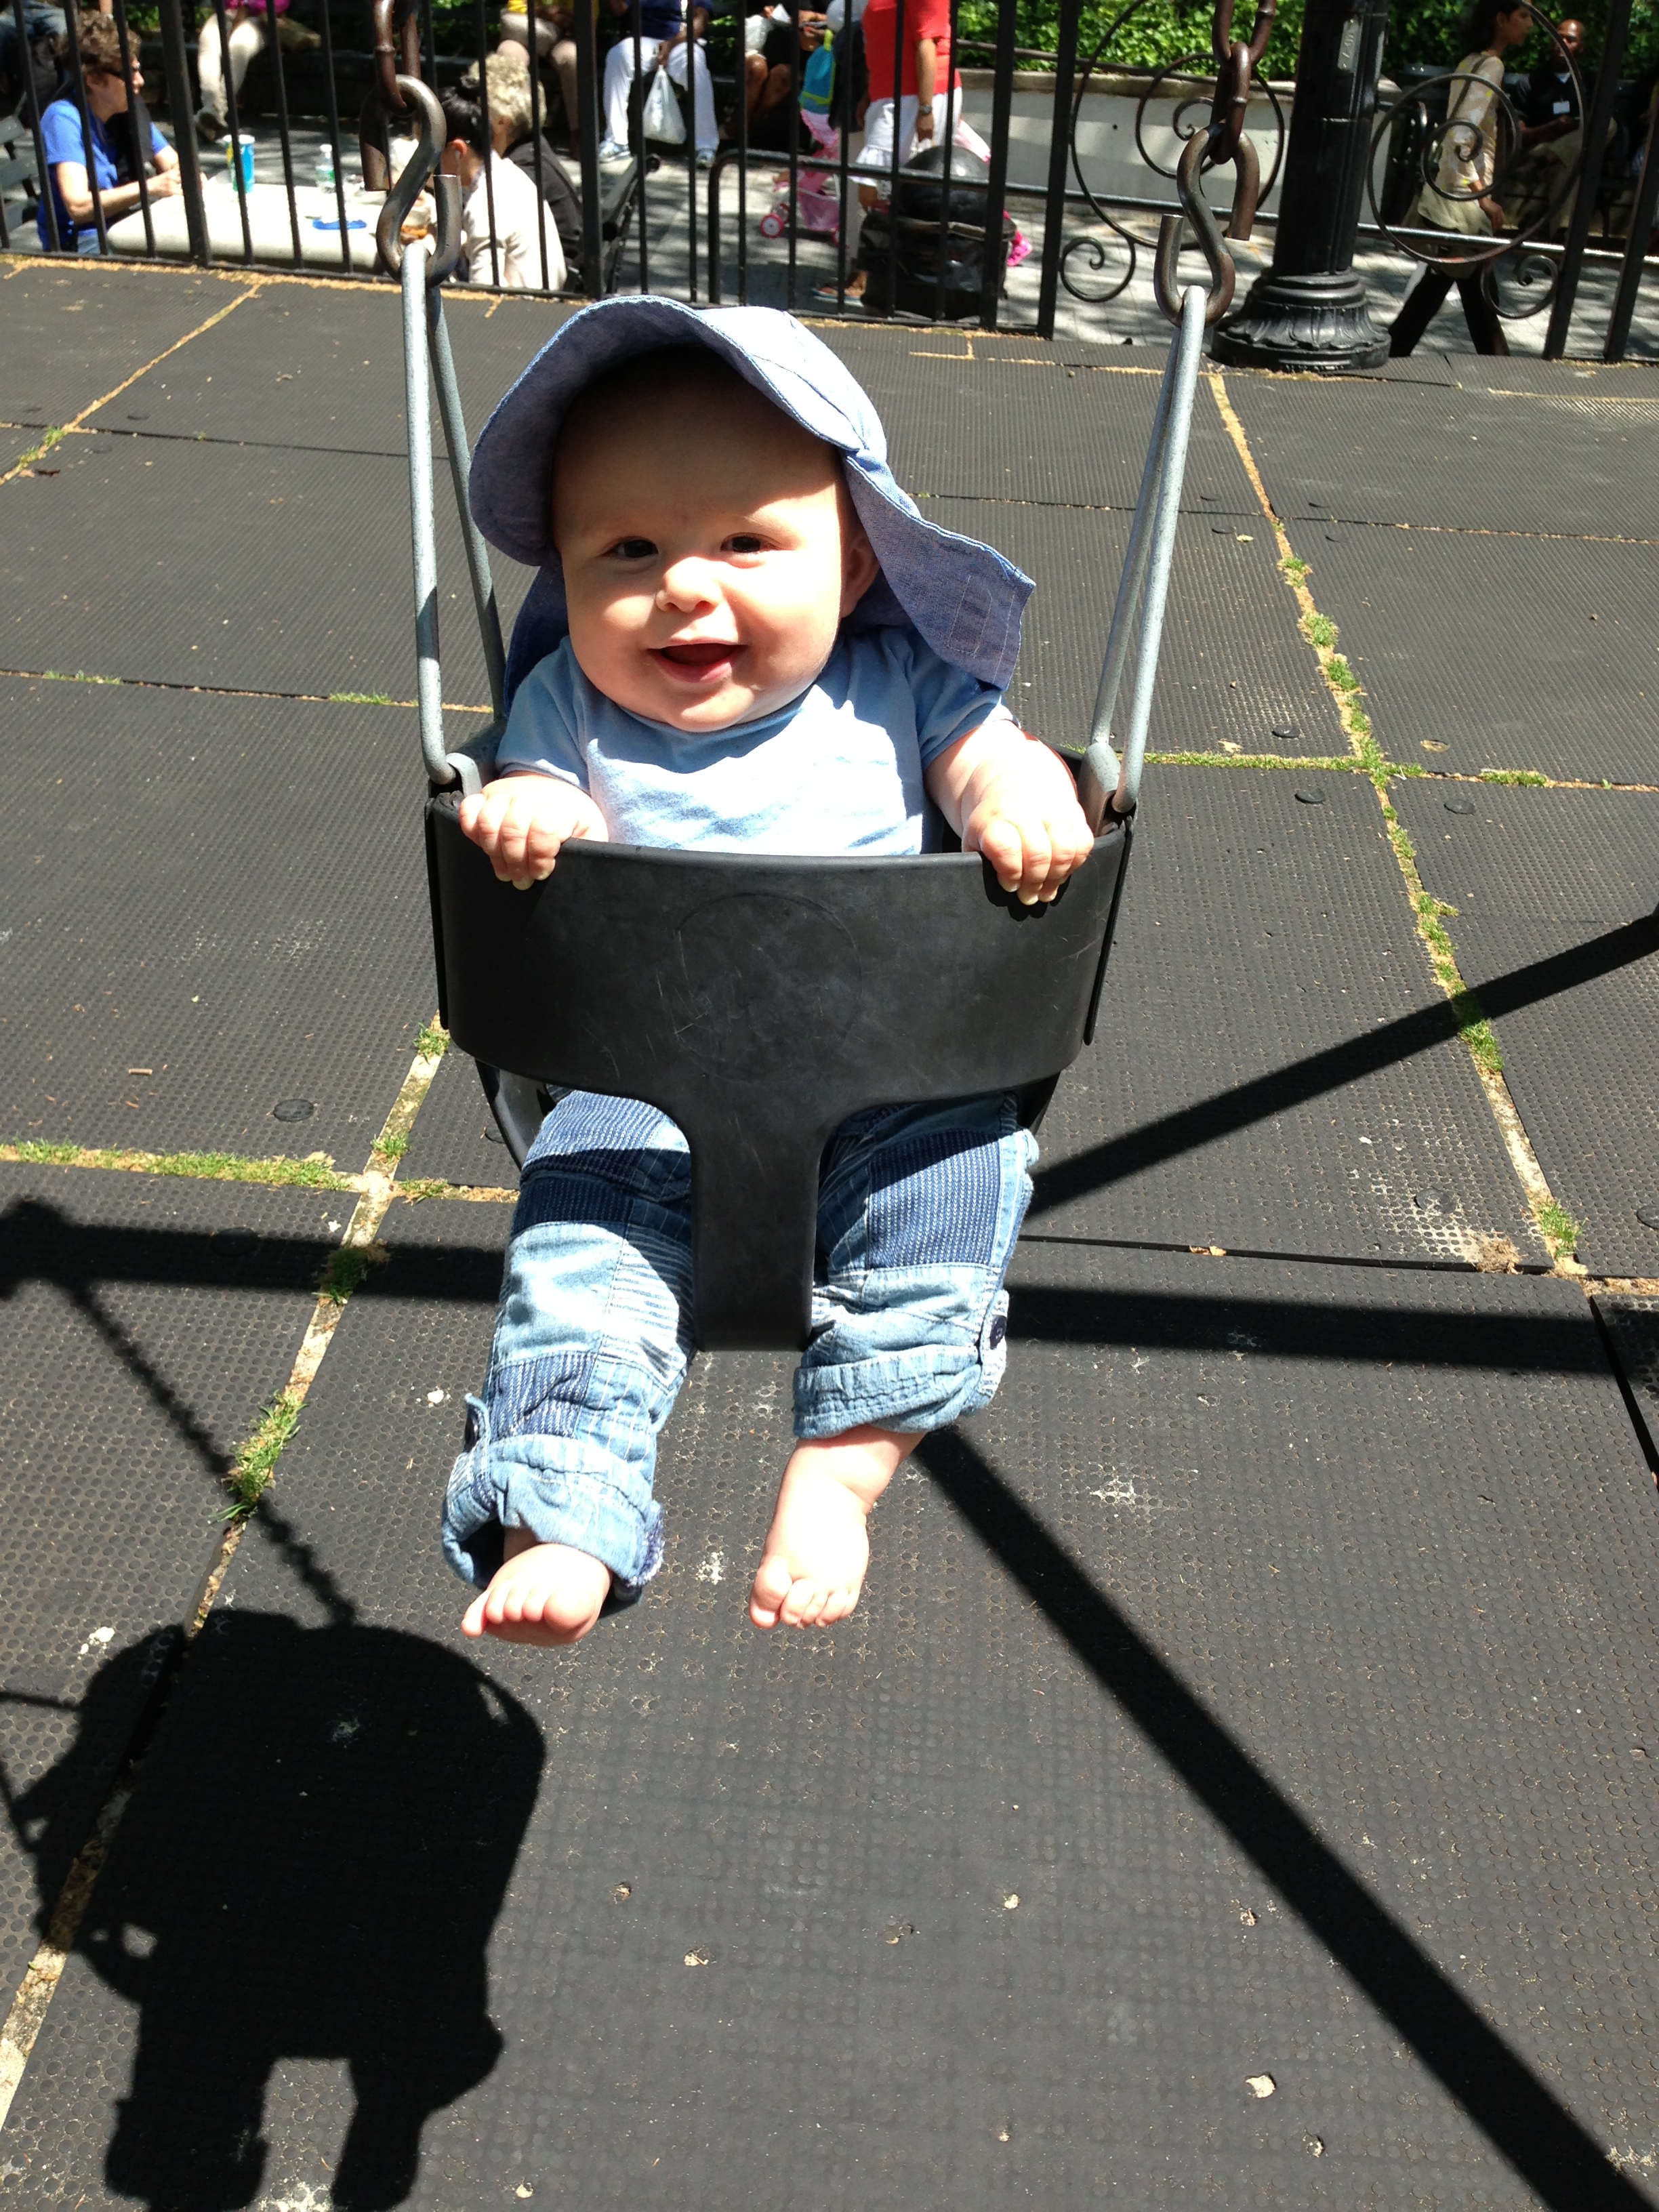 Playground Safety Guide for Parents